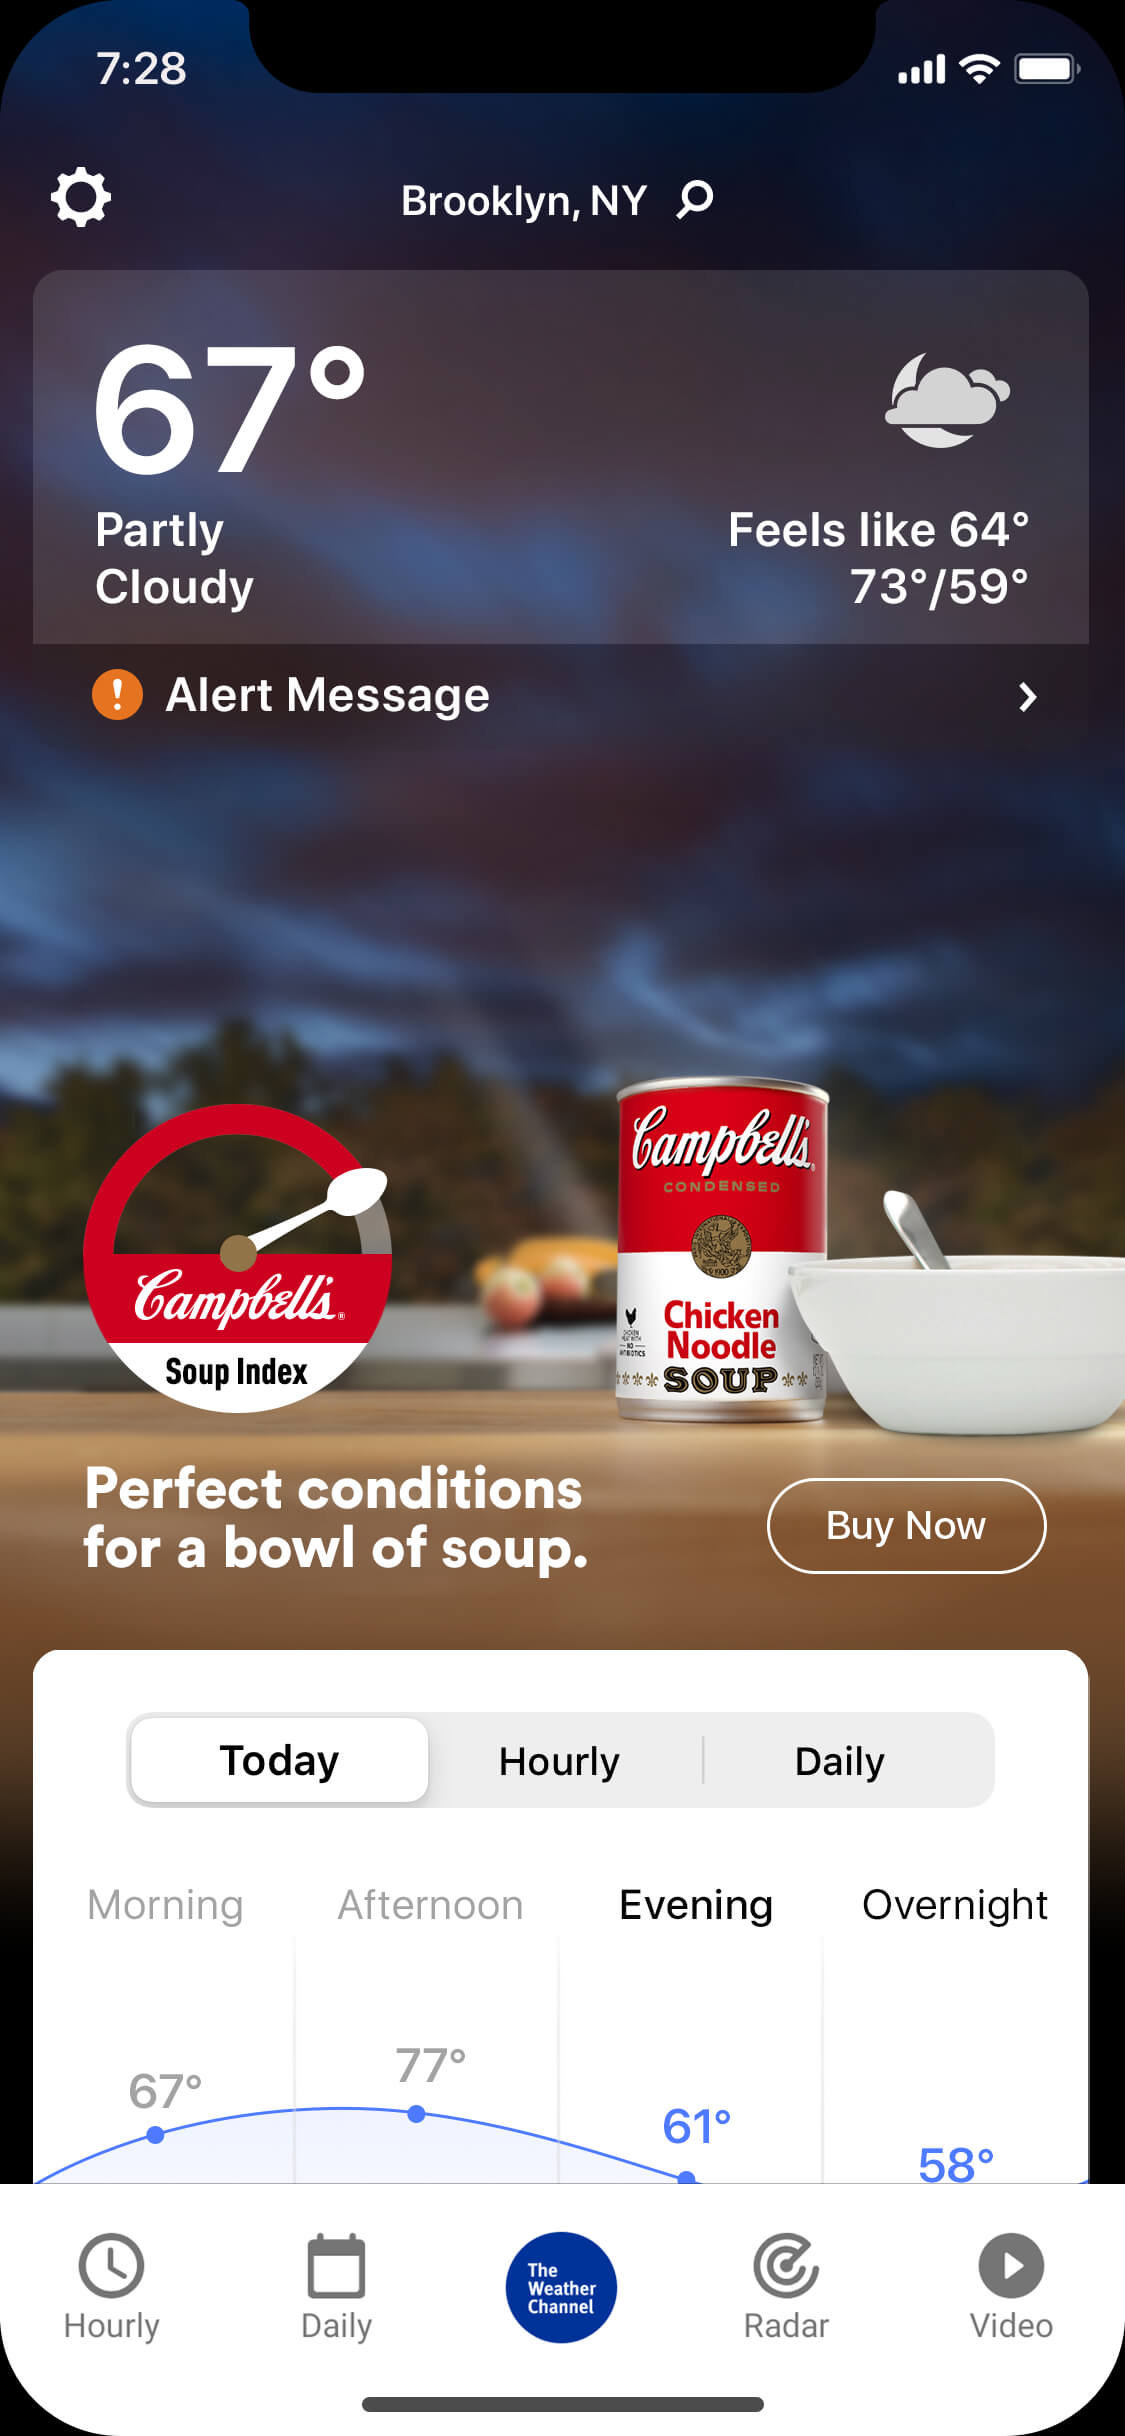 campbells-soup-index-maim_cloudy-night